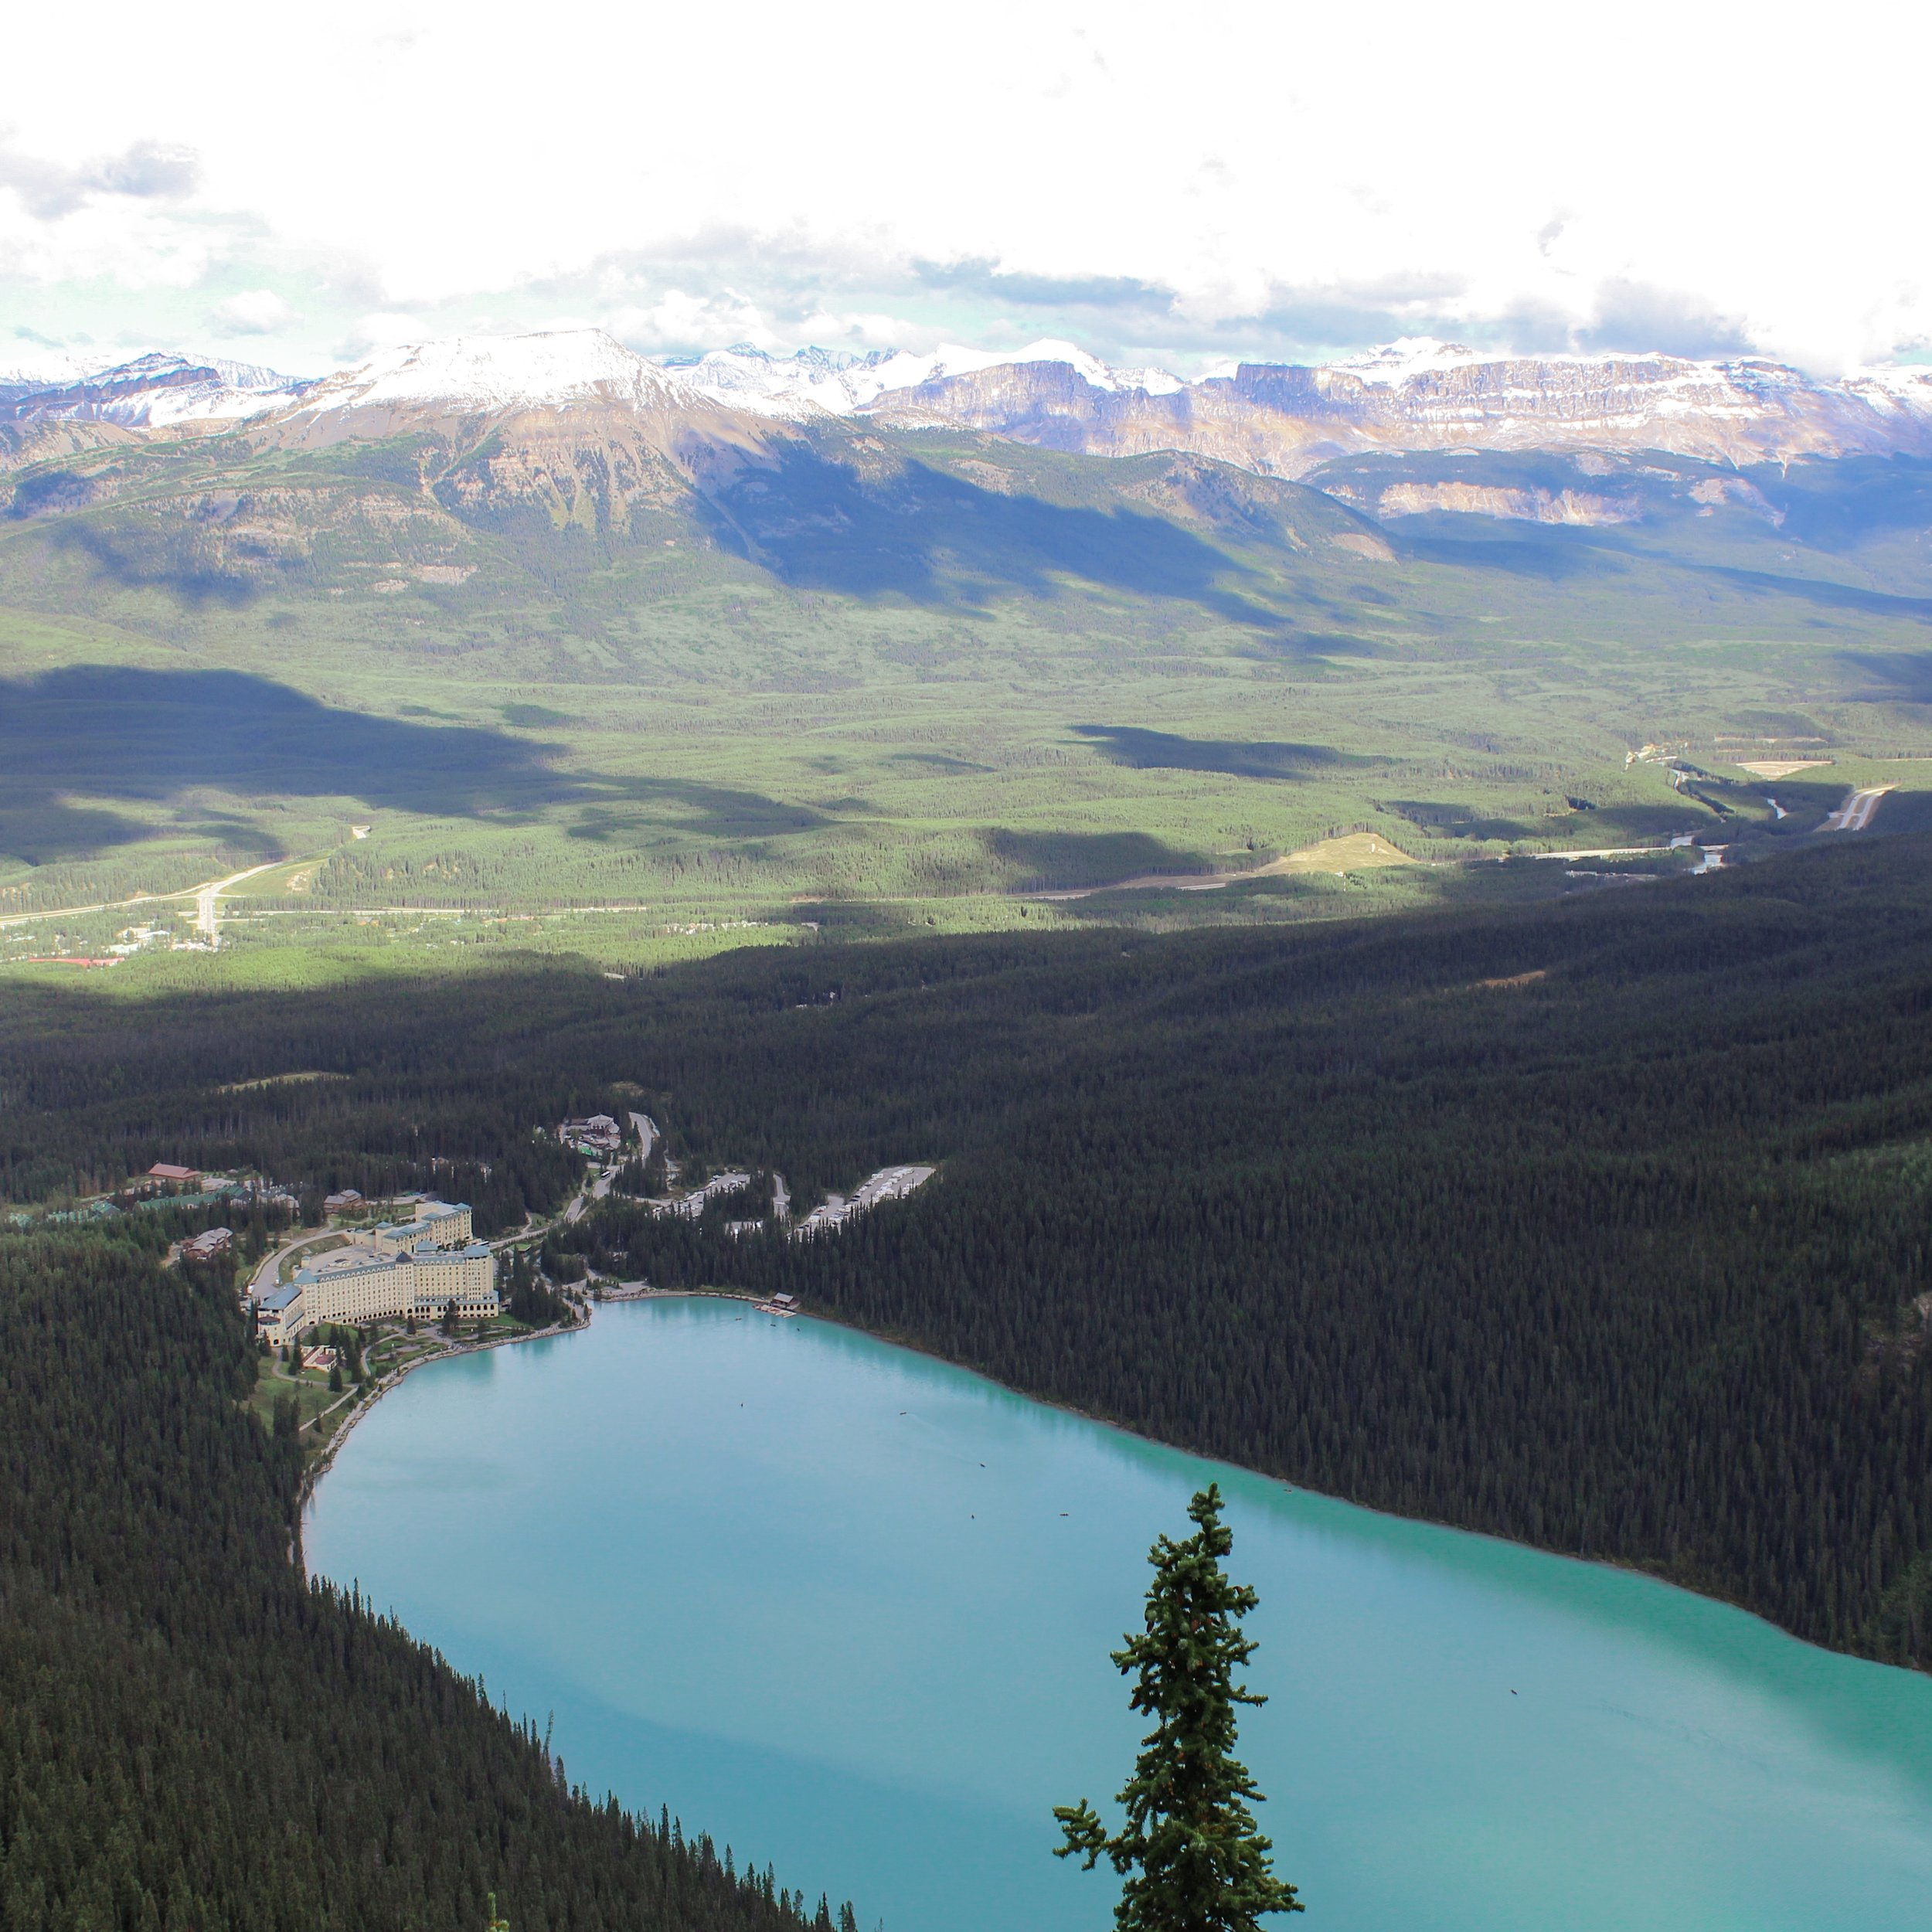 The view down onto Lake Louise from the top of Big Beehive